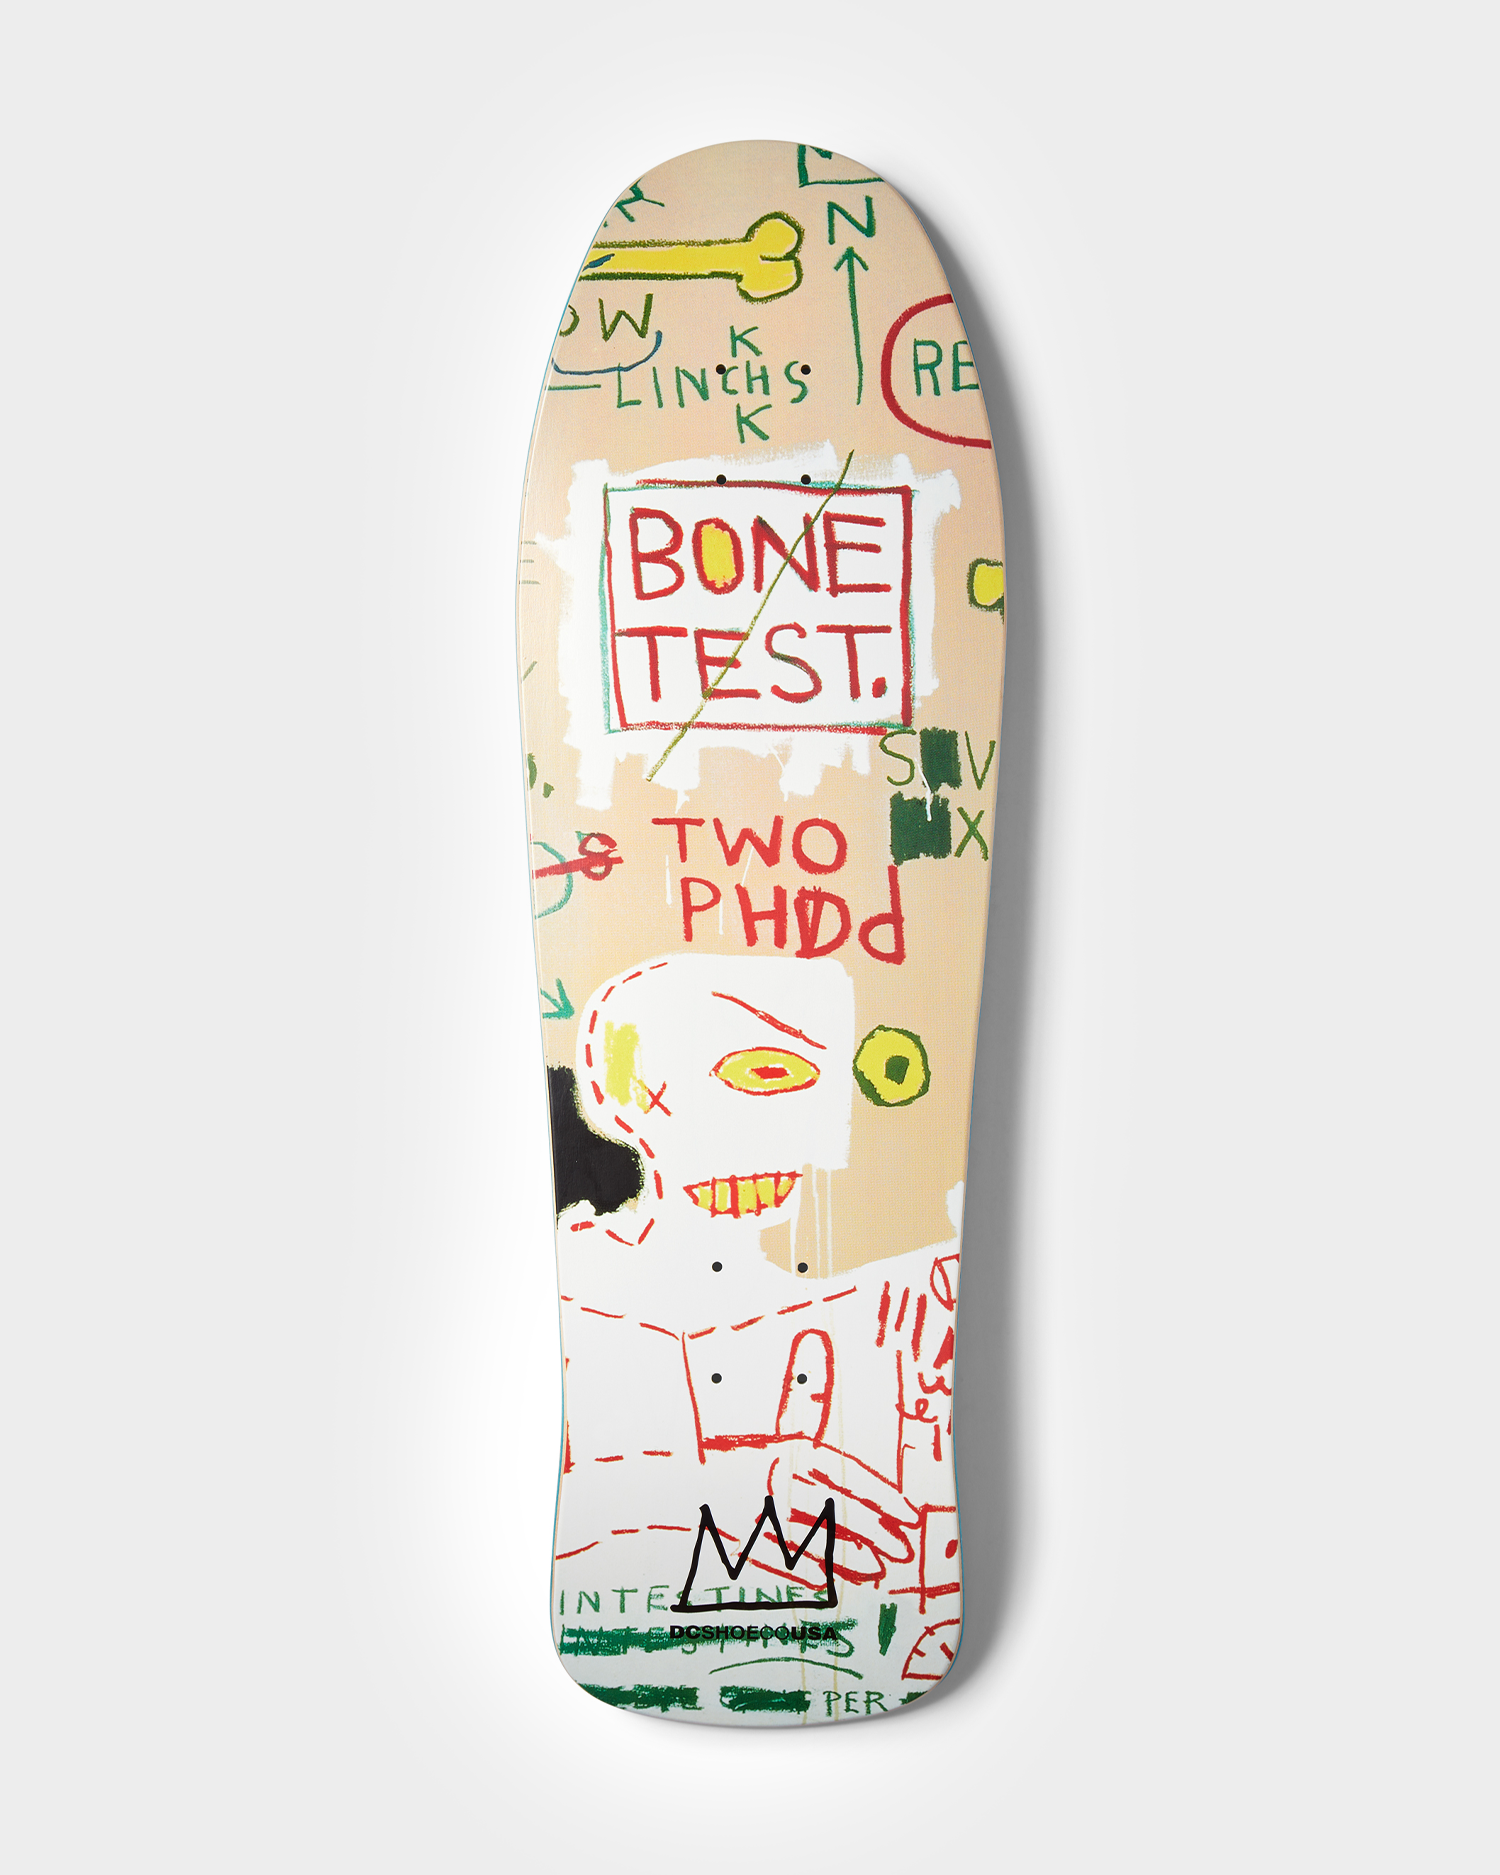 DC X Basquiat Deck Carbon Dating System vs. Scatchproof Tape